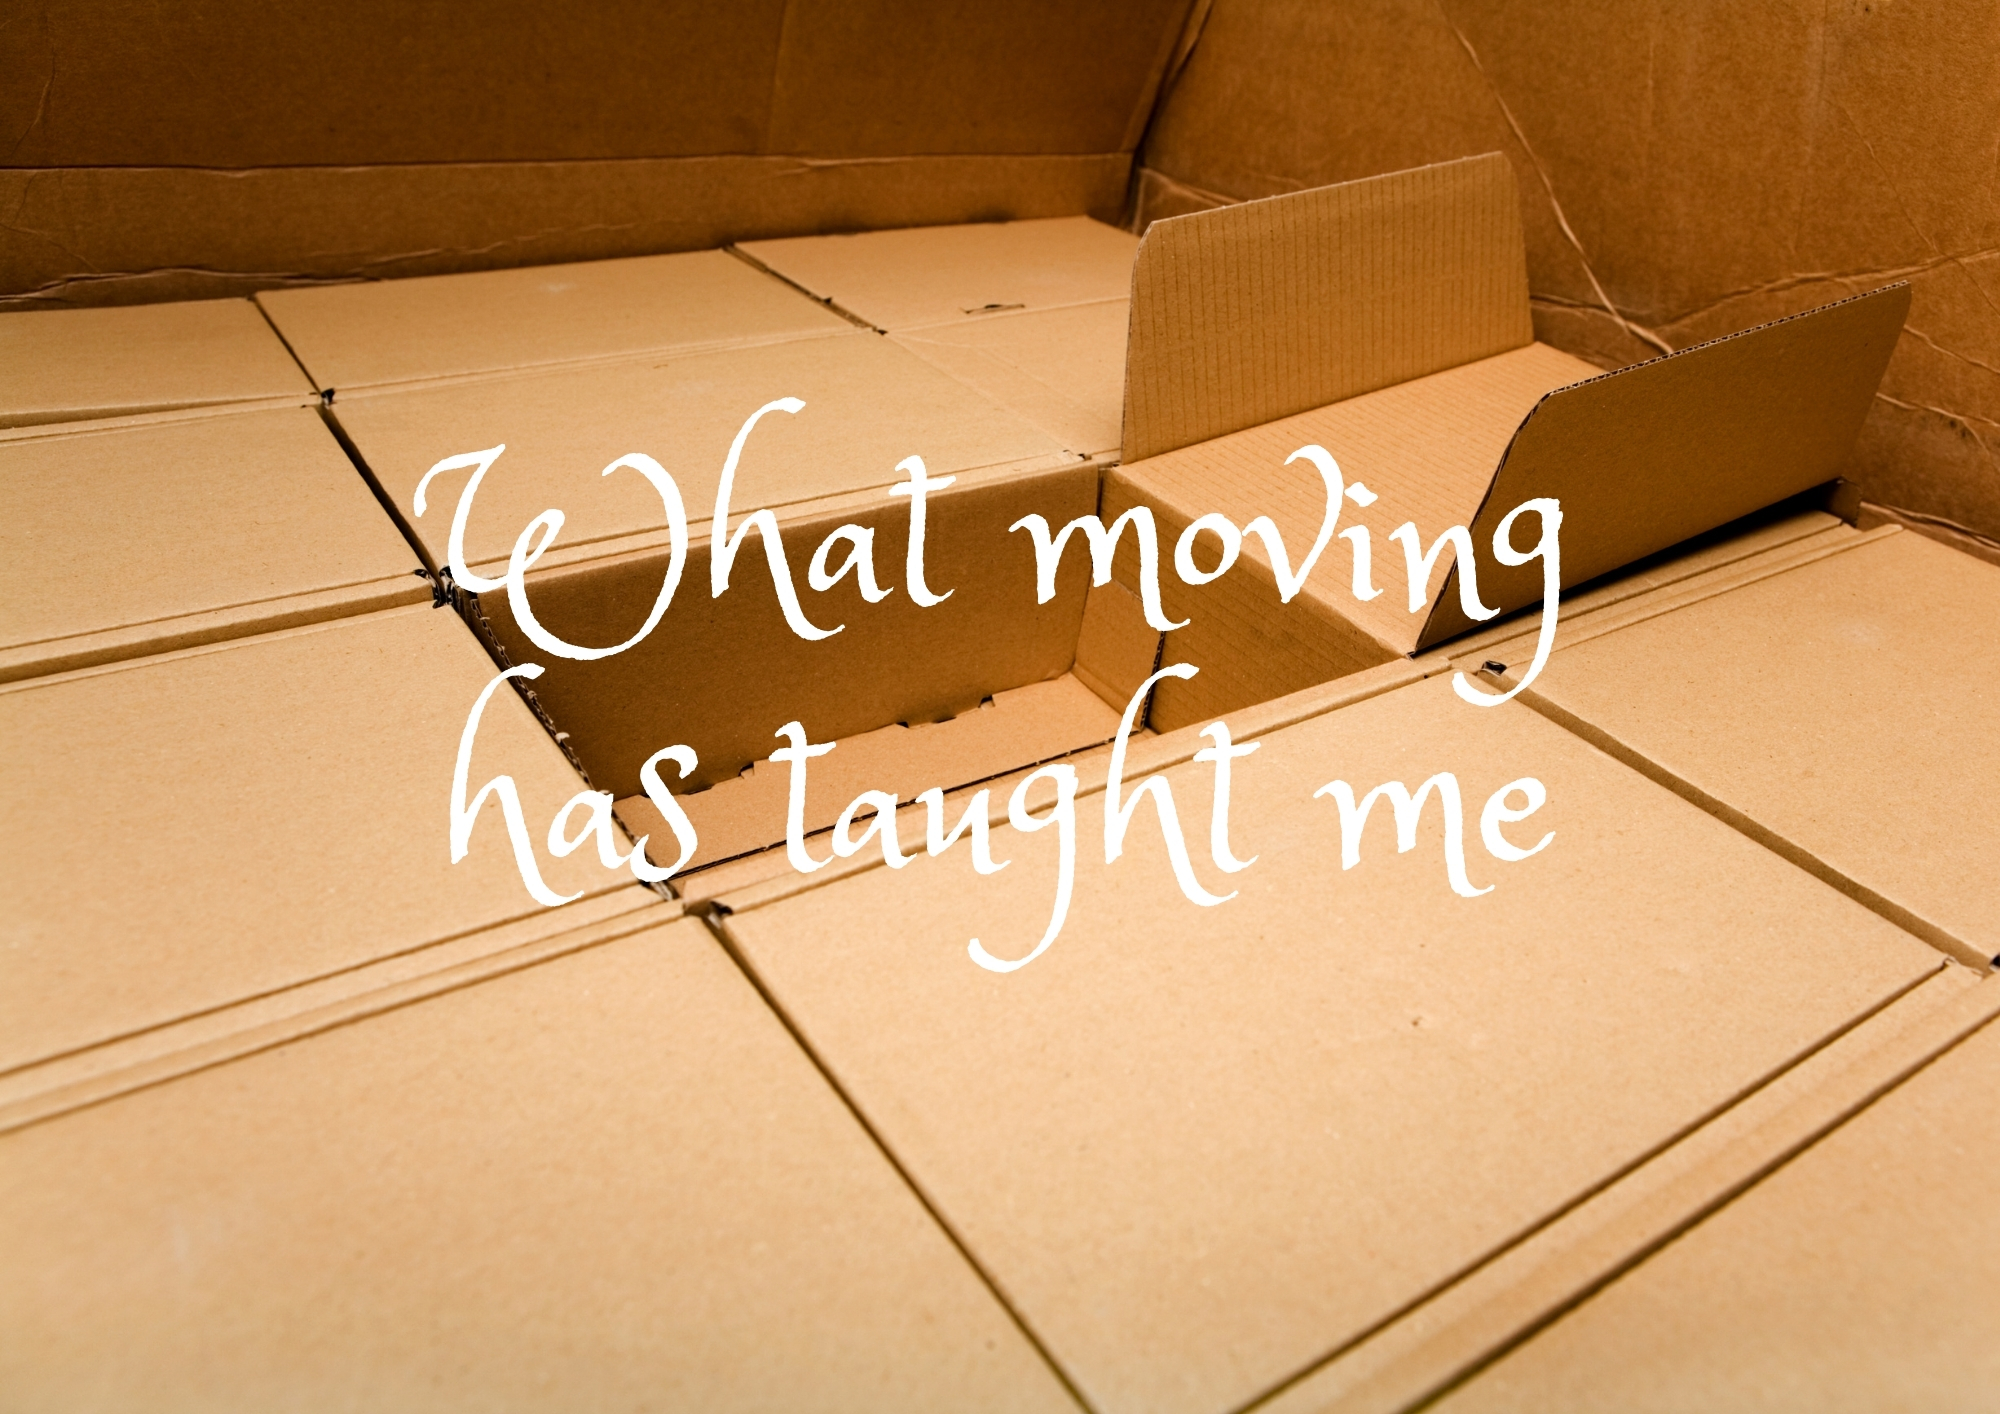 What moving has taught me